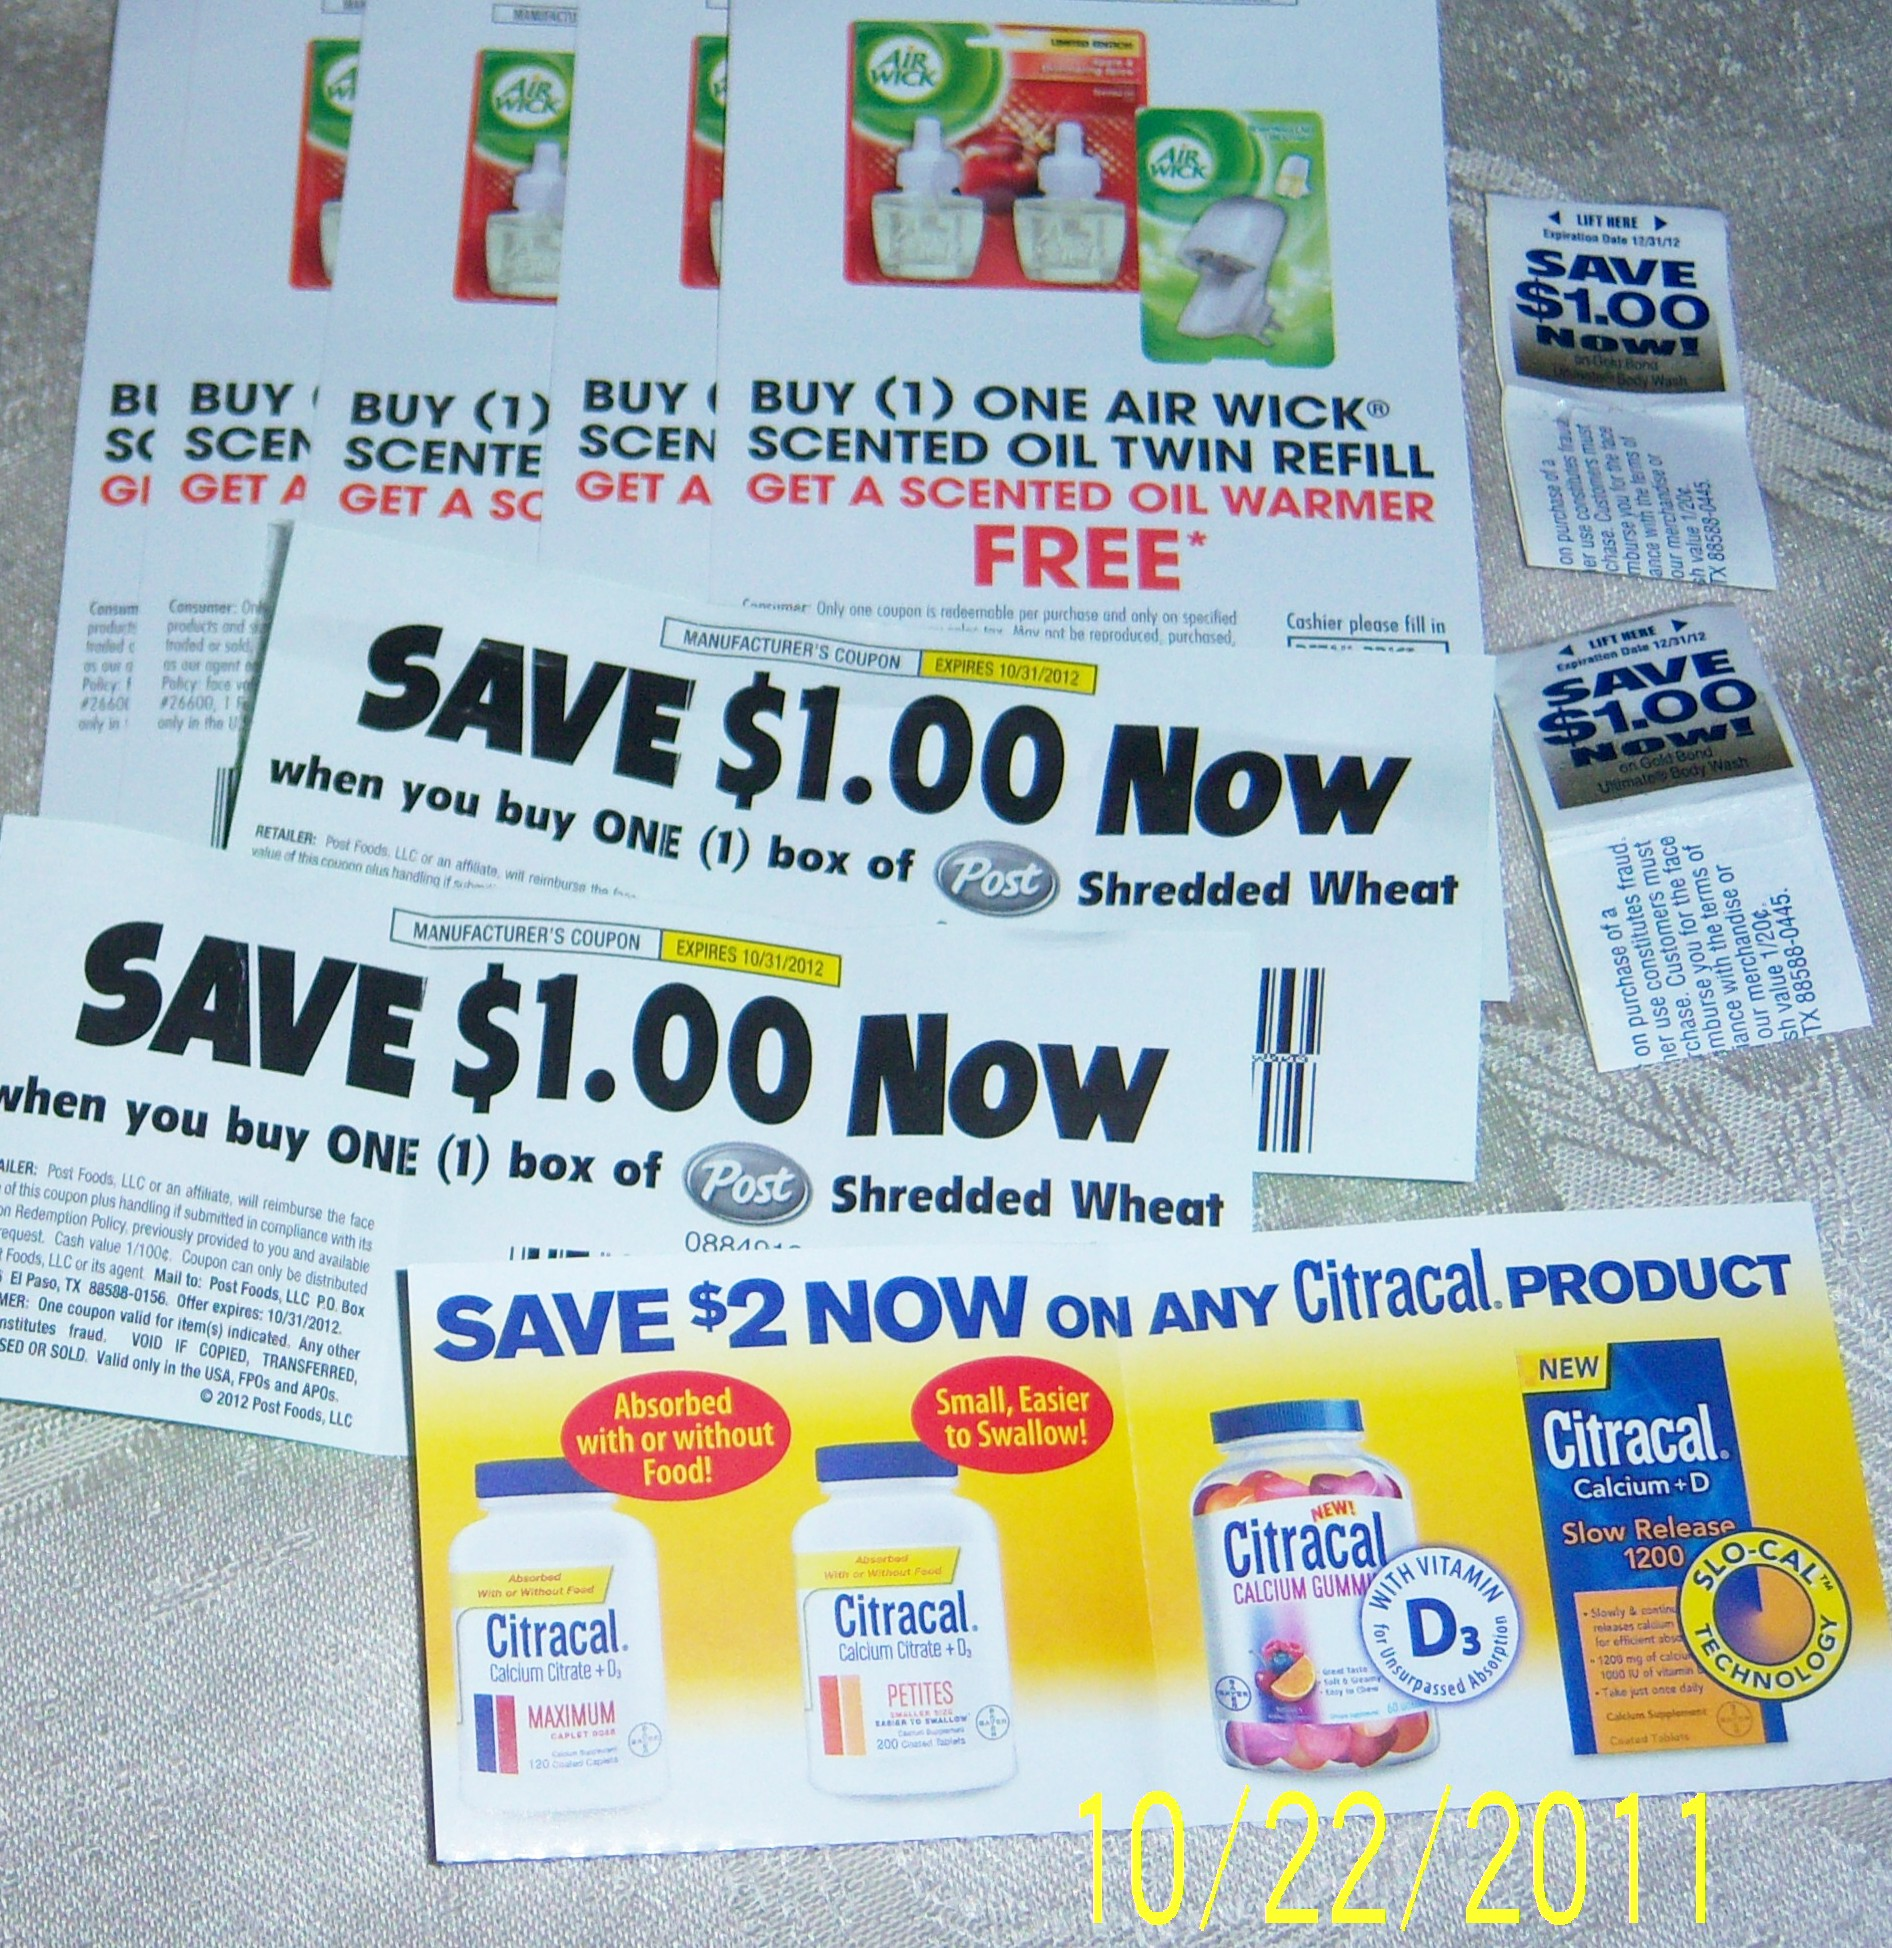 image about Printable Marlboro Coupons known as No cost camel snus discount coupons printable : Birthday coupon medieval